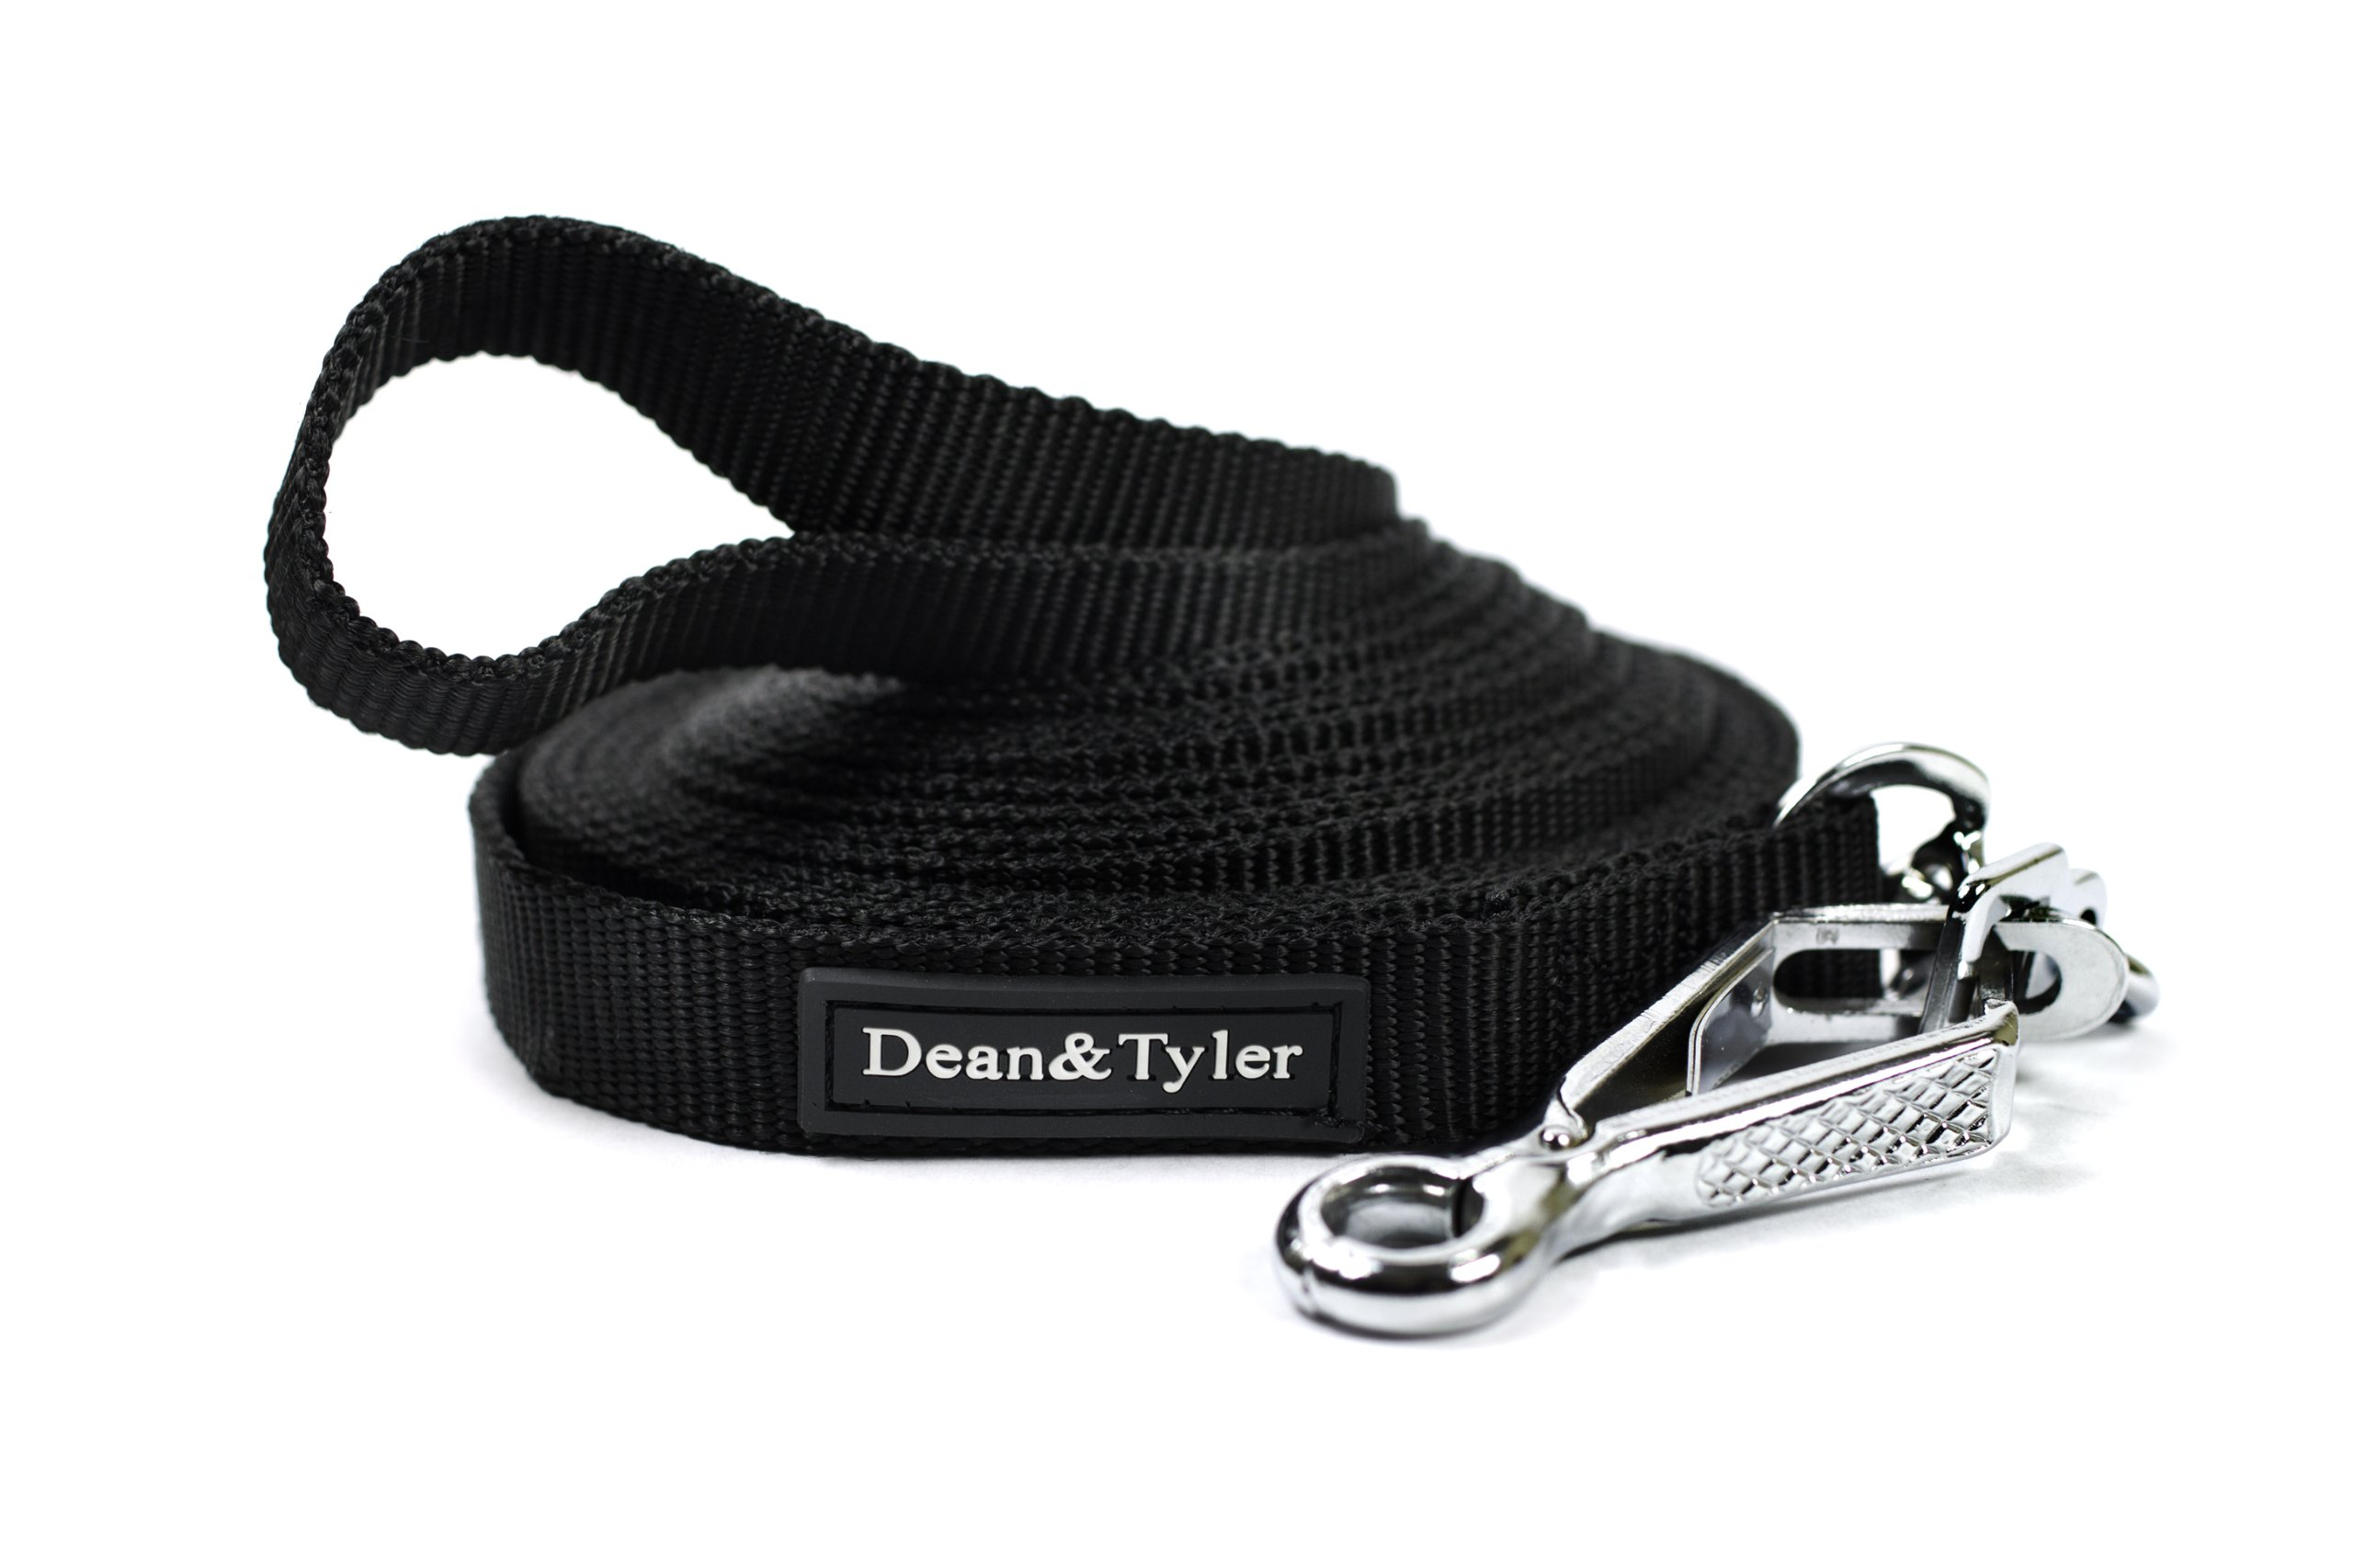 Dean & Tyler Double Ply Nylon Dog Leash with Herm Sprenger Hardware, 55-Feet by 3/4-Inch, Black